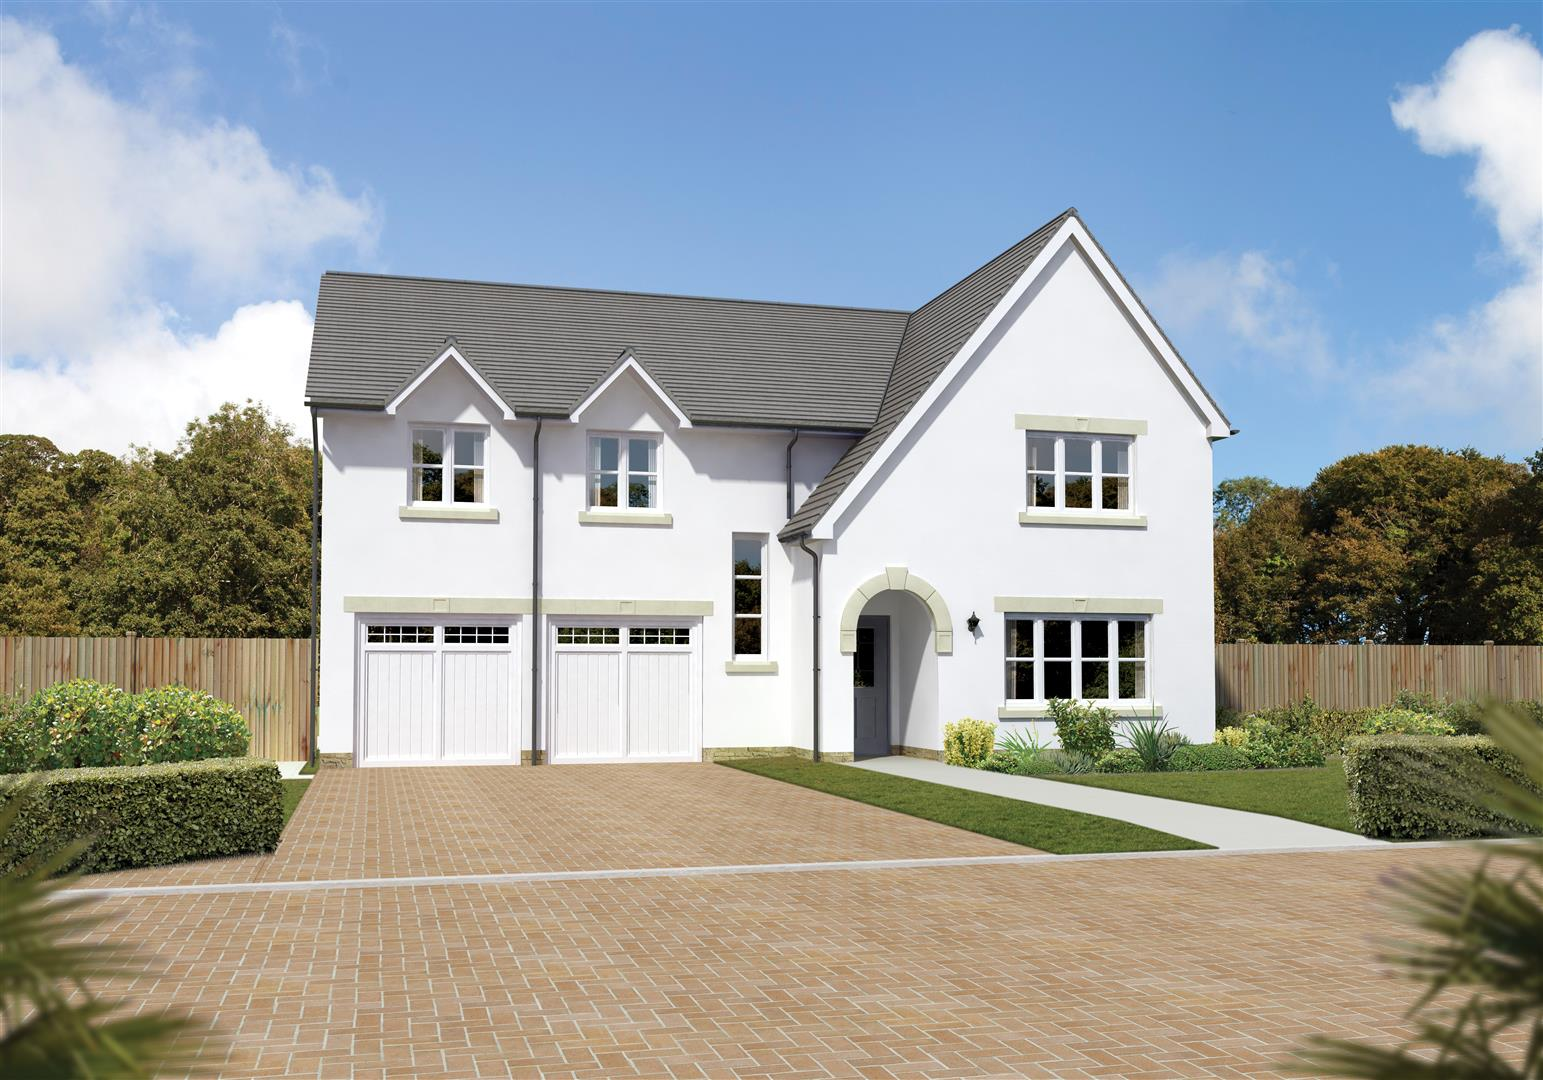 The Southbrook Stewart Milne Homes Hunters Meadow